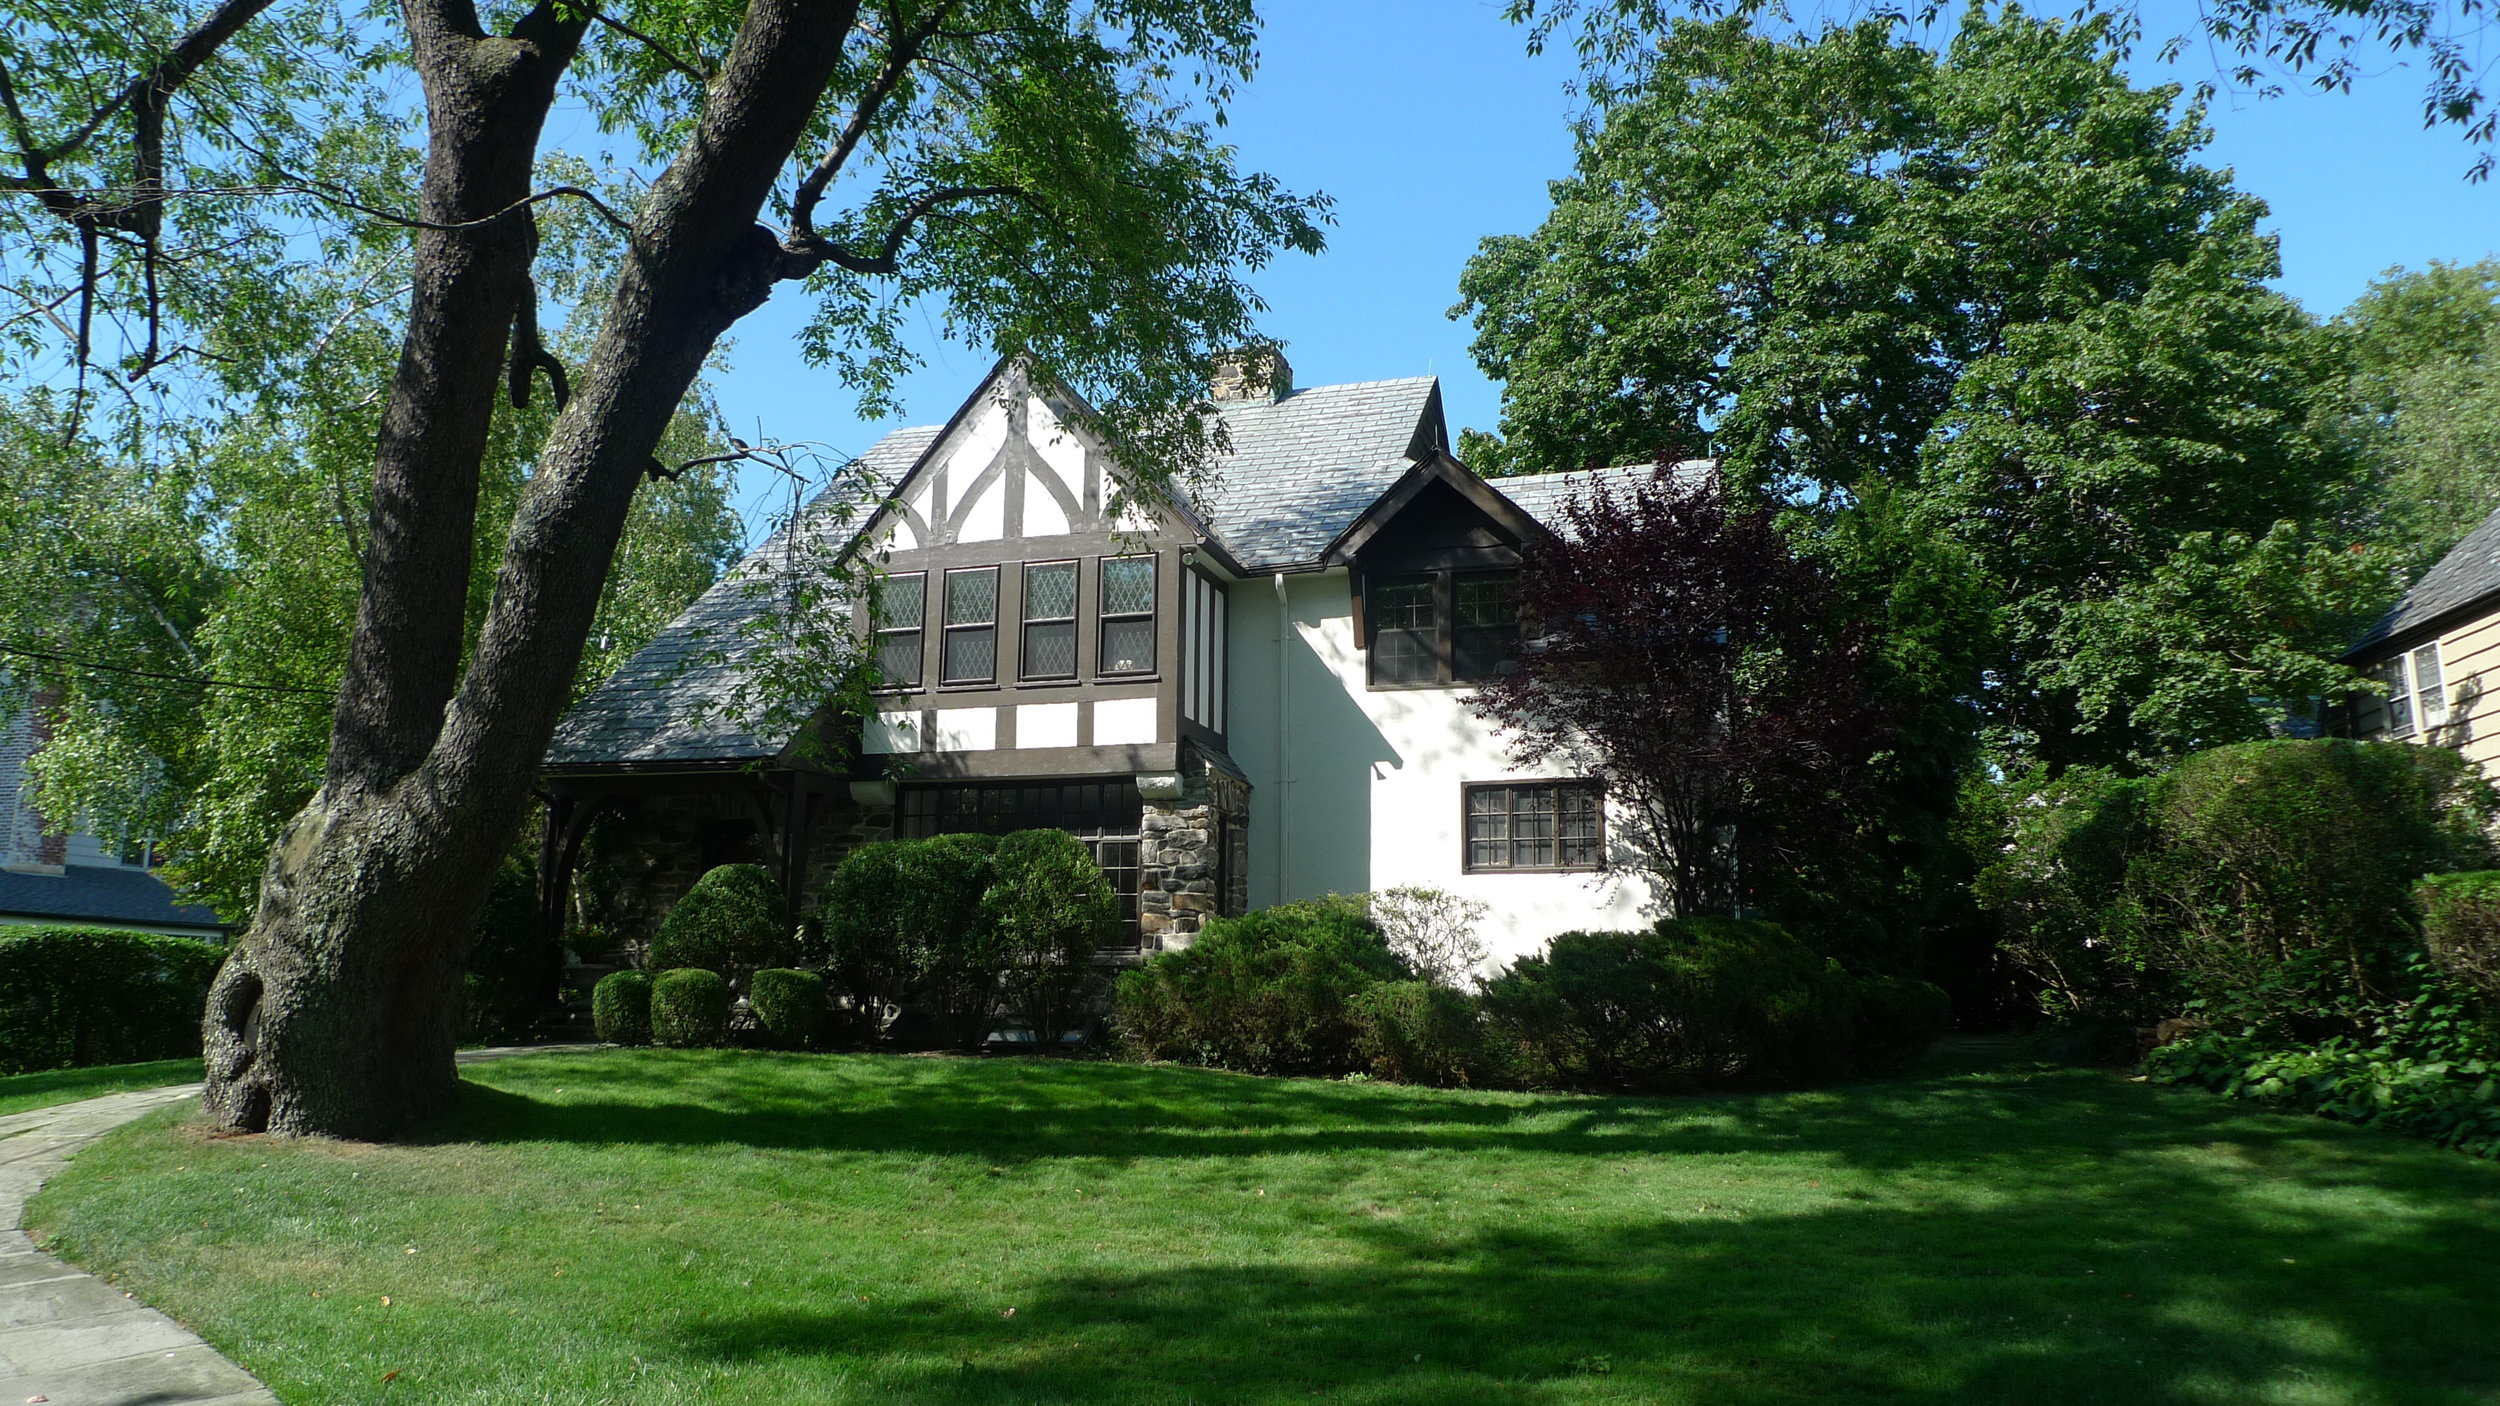 LISTED & SOLD  7 Campden Road Edgemont, NY. Represented the Buyer, 2007 & Represented the Seller as the Listing Agent in 2012